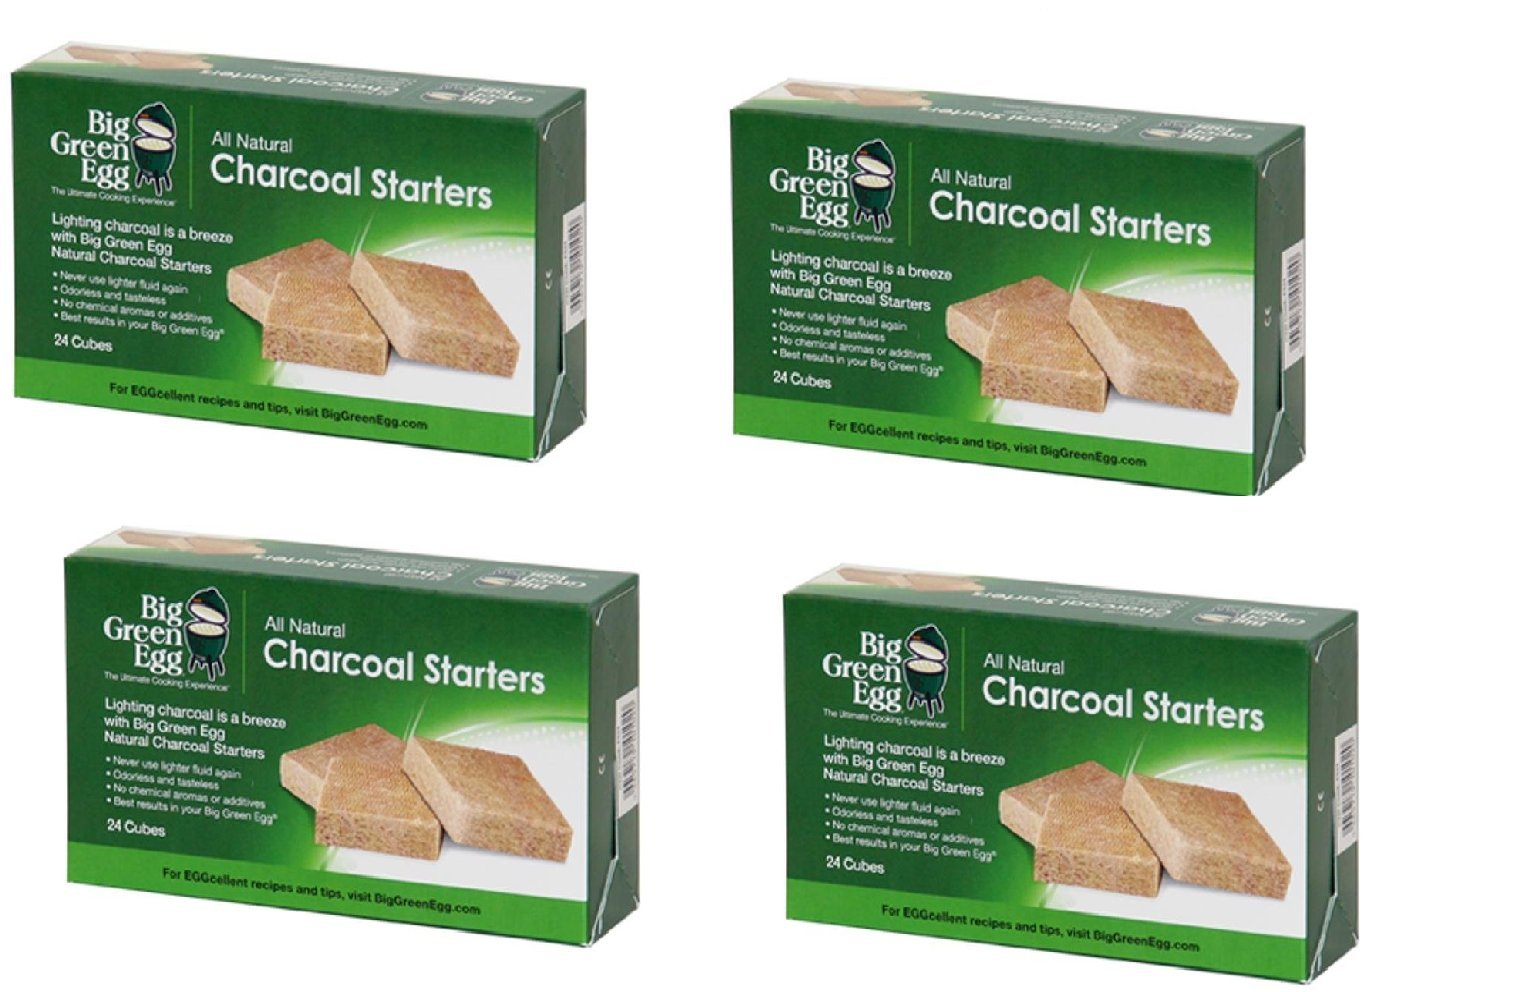 Big Green Egg All Natural Charcoal Starters - 24 cubes (4 BOXES)